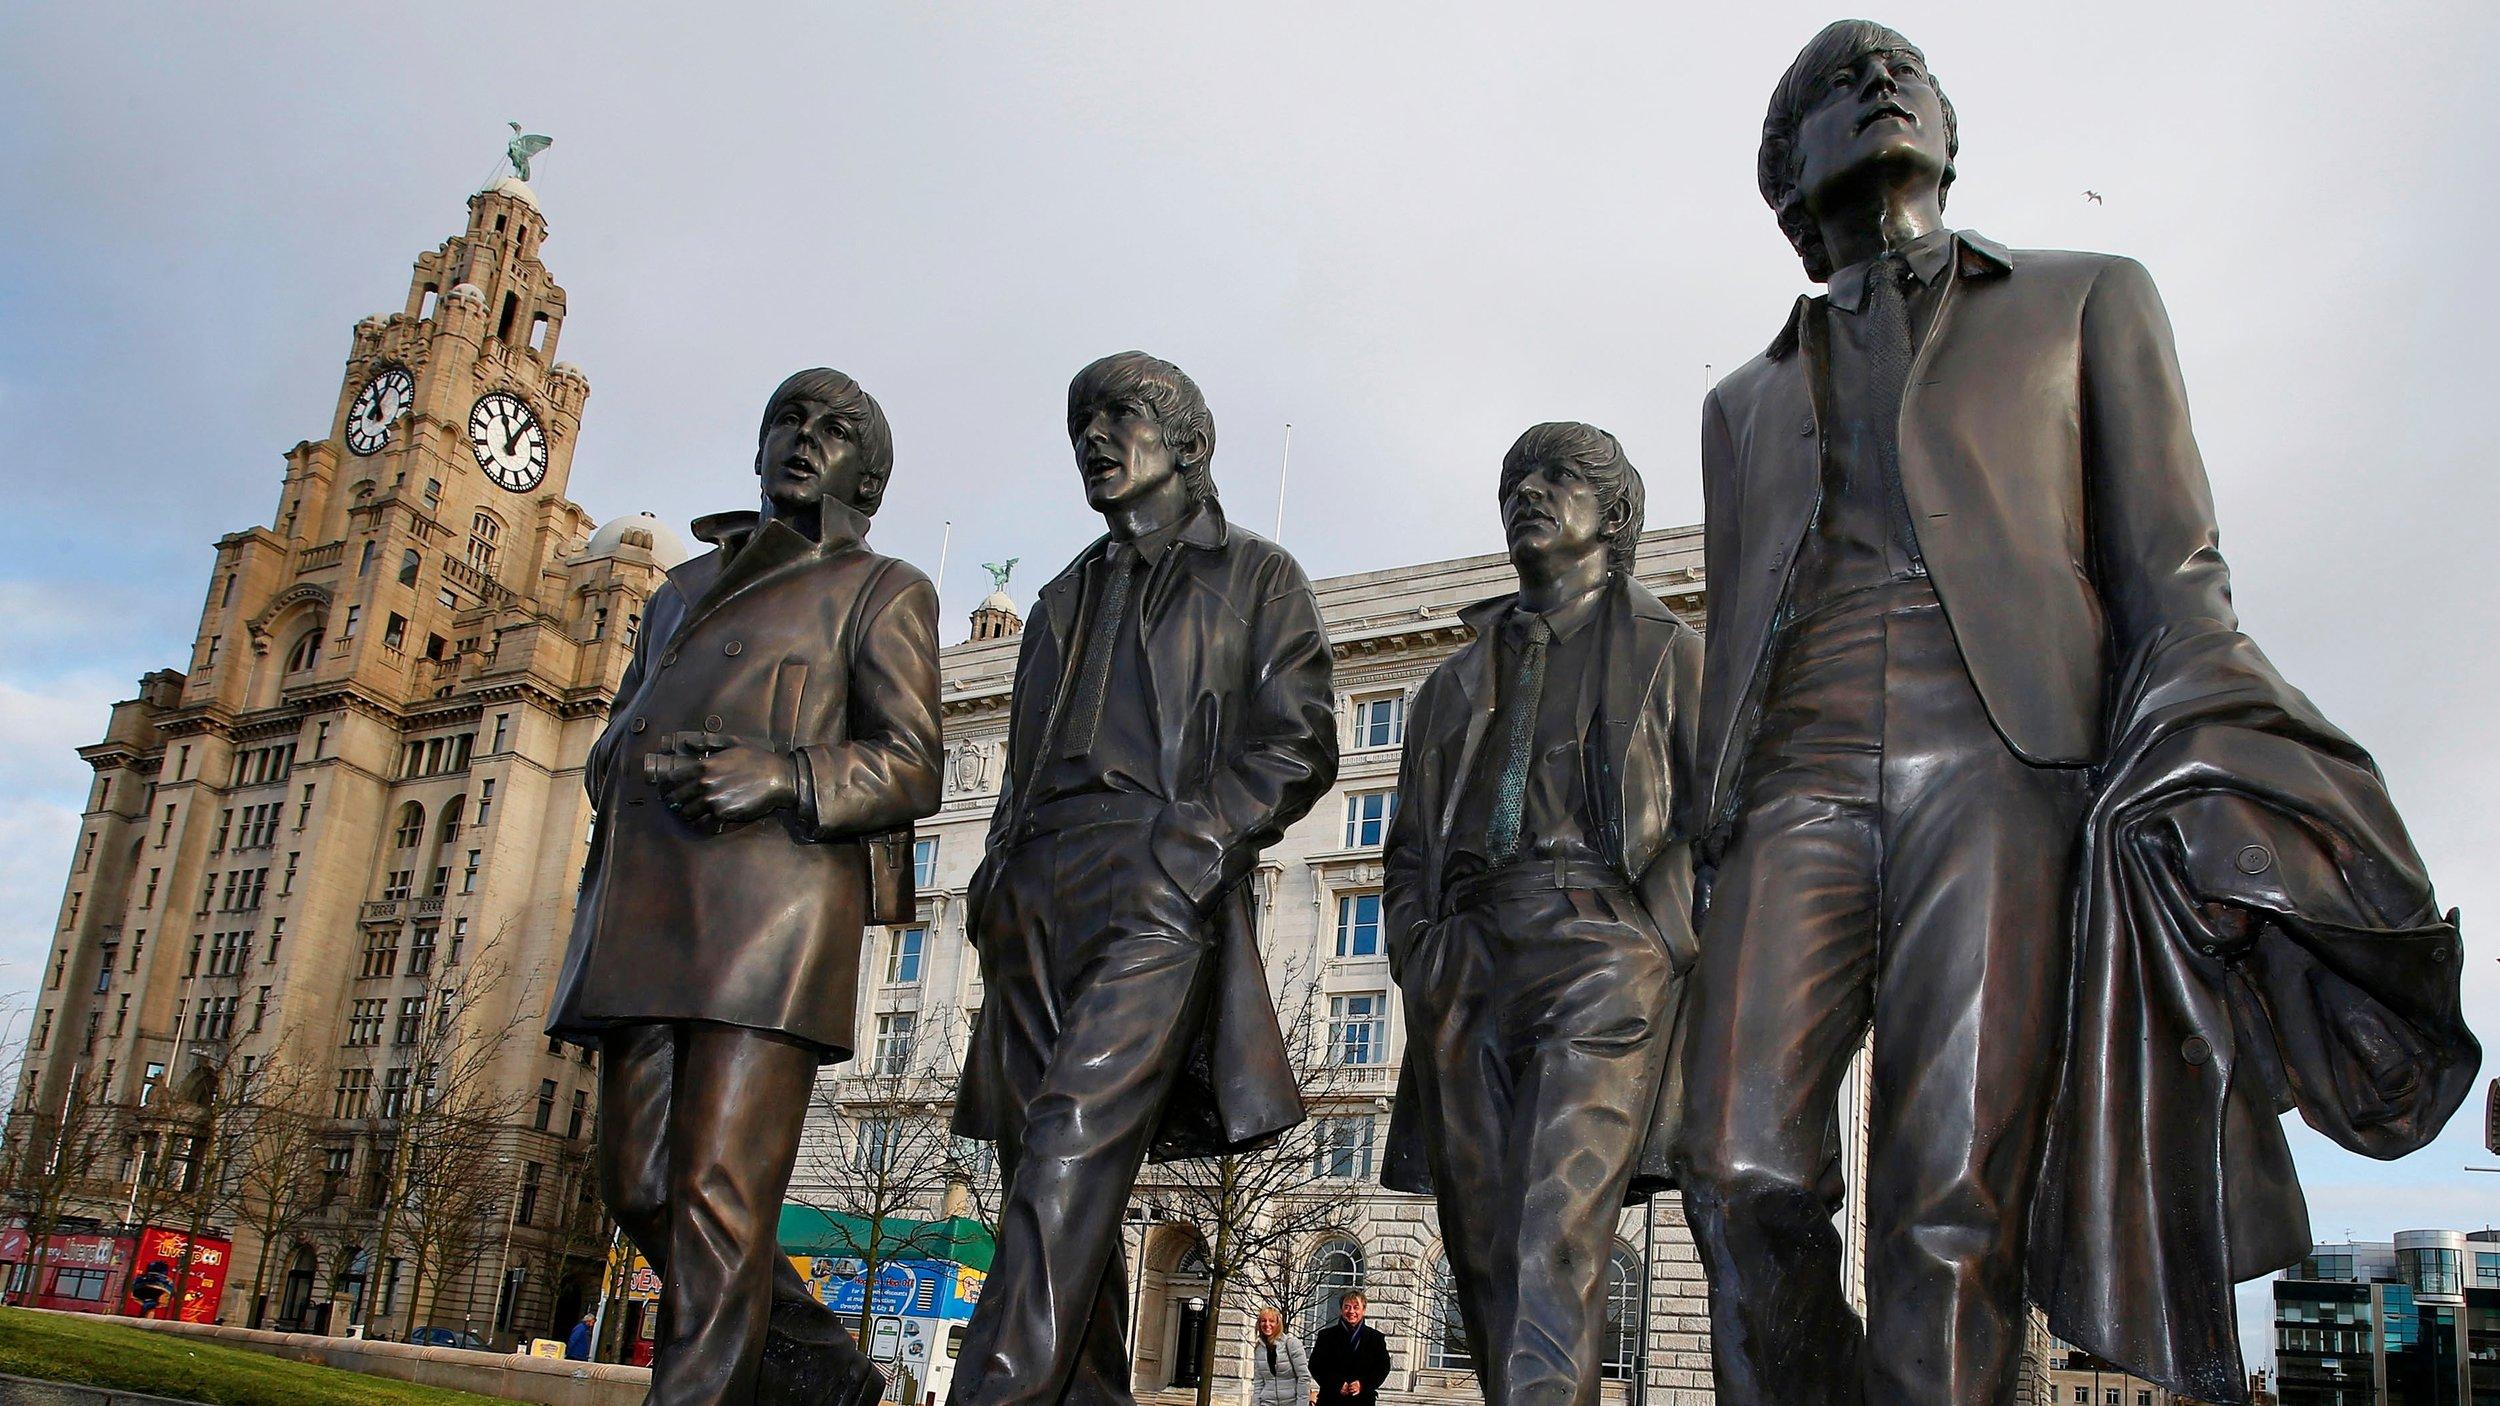 The Beatles Statue & Iconic Liver Building